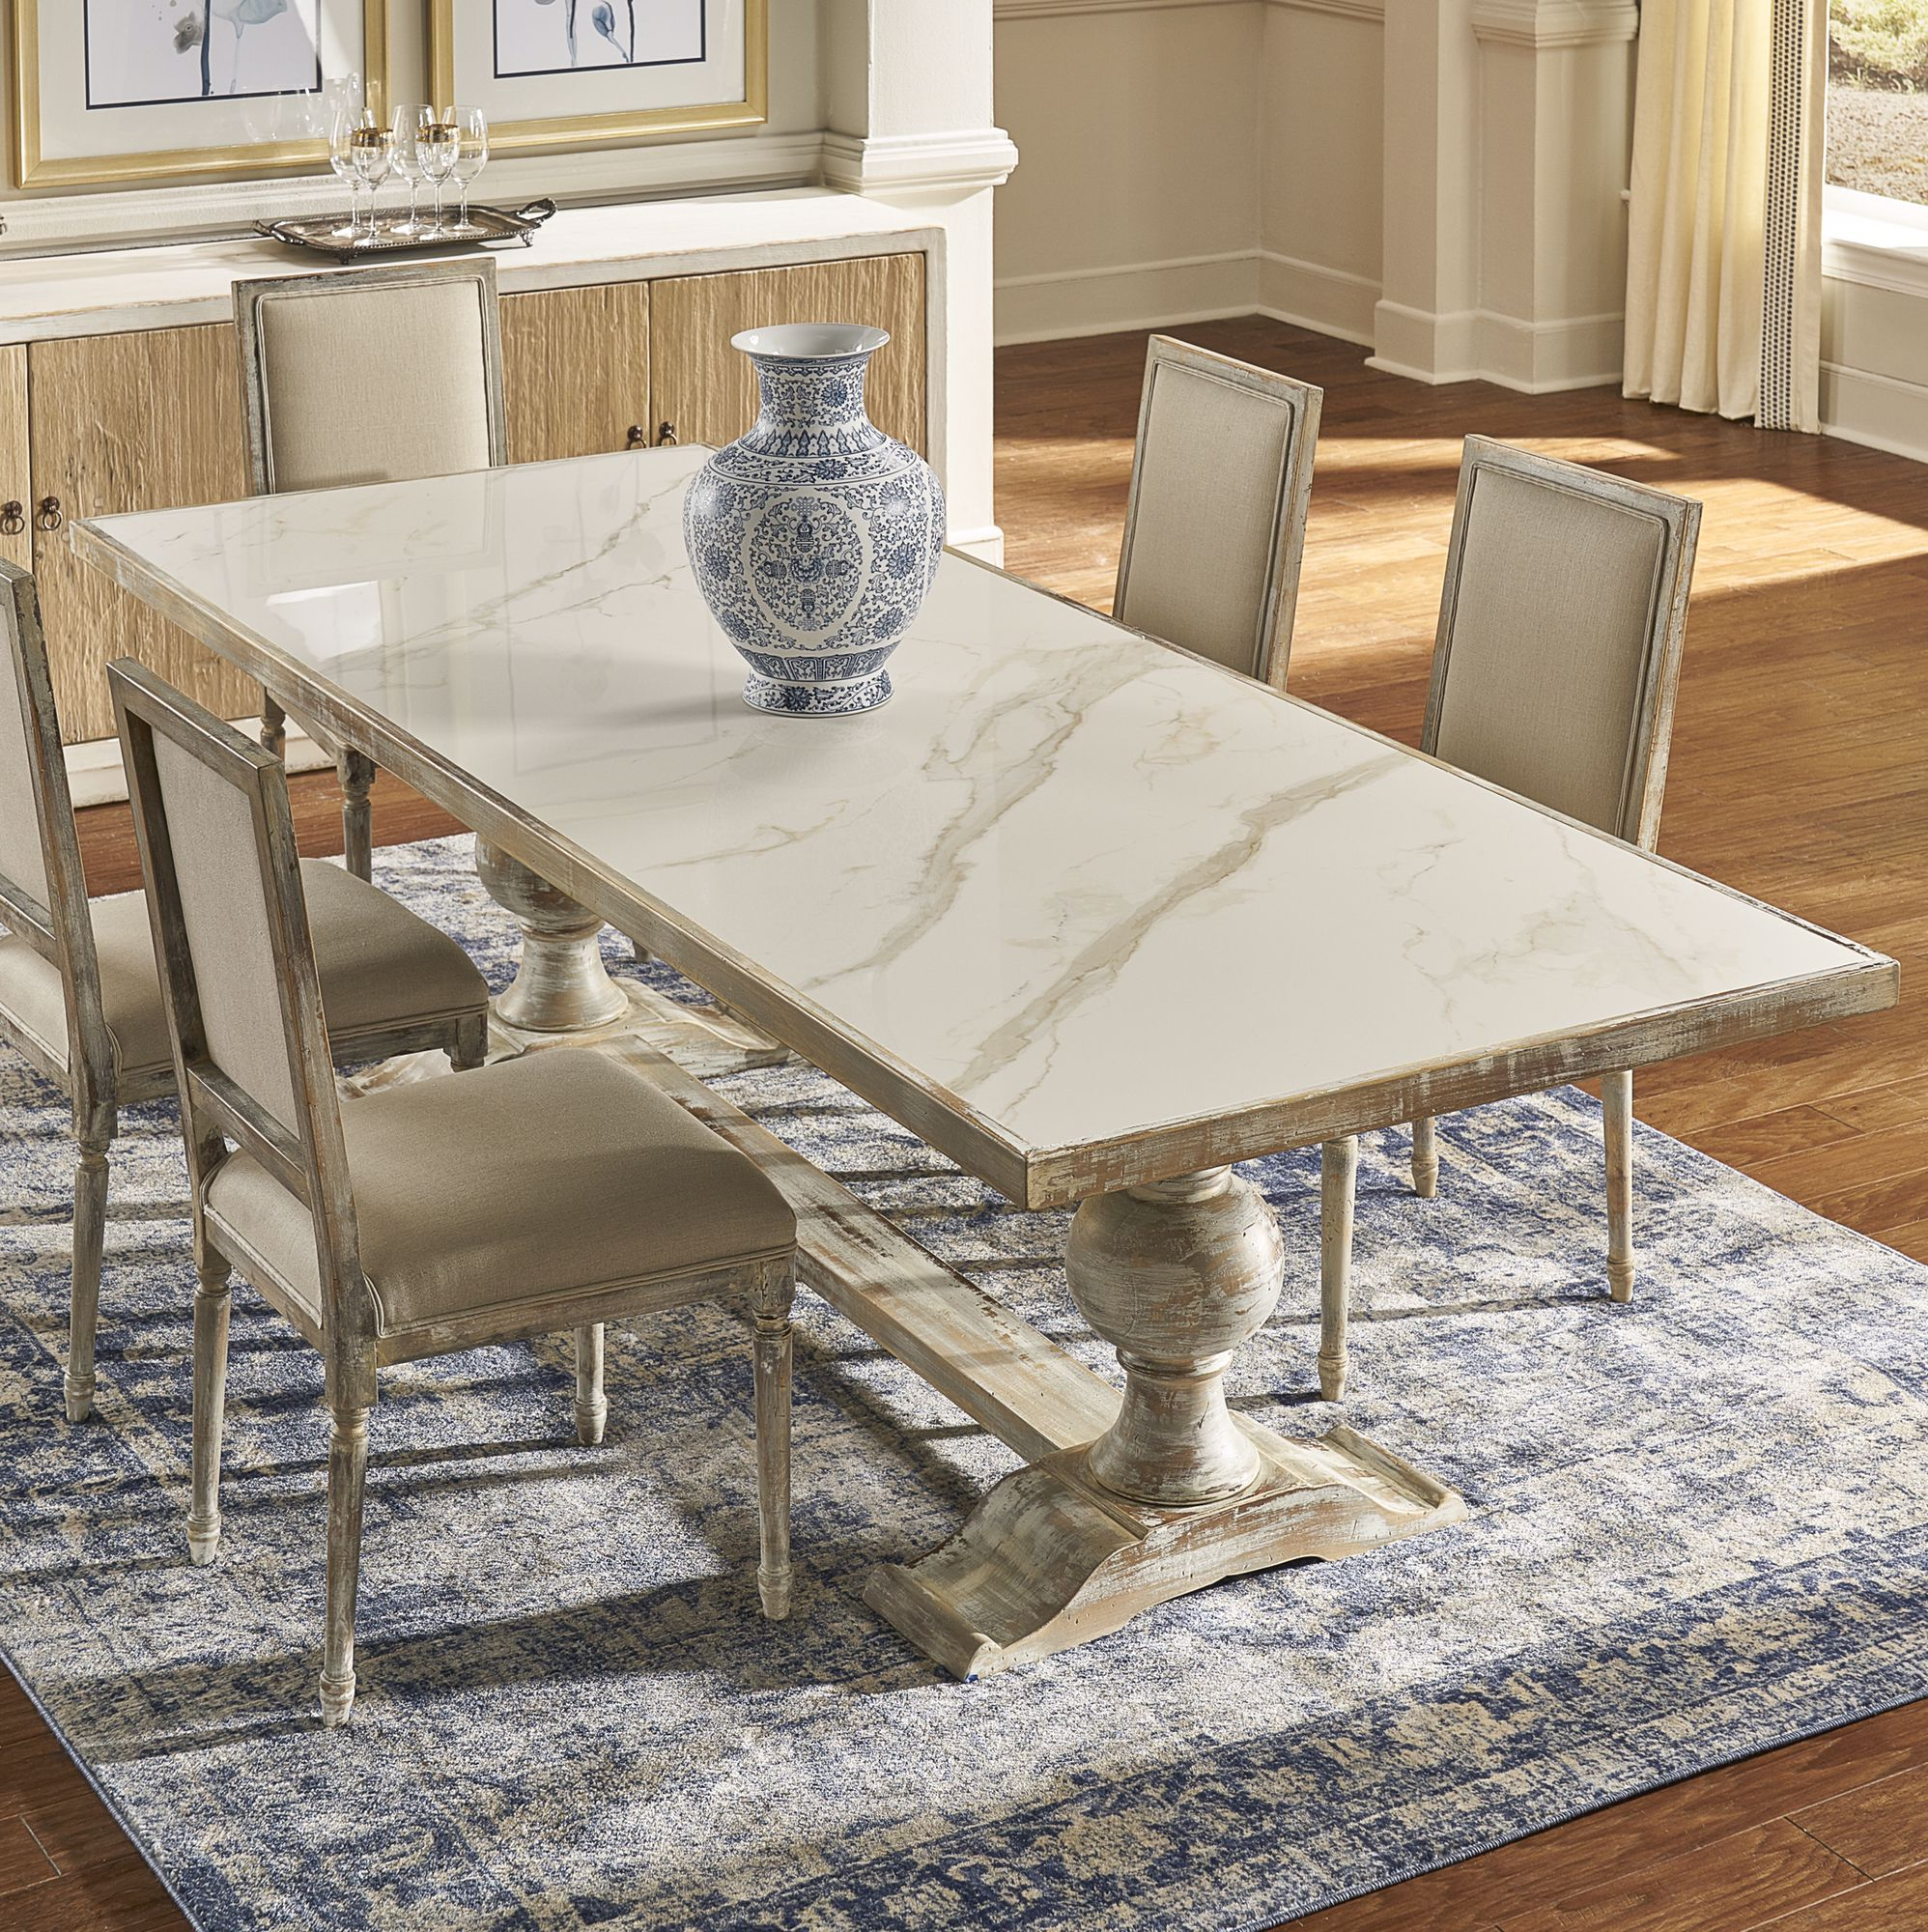 This Beautiful Trestle Base Table In Grey Oak Finish With A Porcelain Top Fashioned To Resemble Marble Dining Table Rectangular Dining Table Trestle Base Table